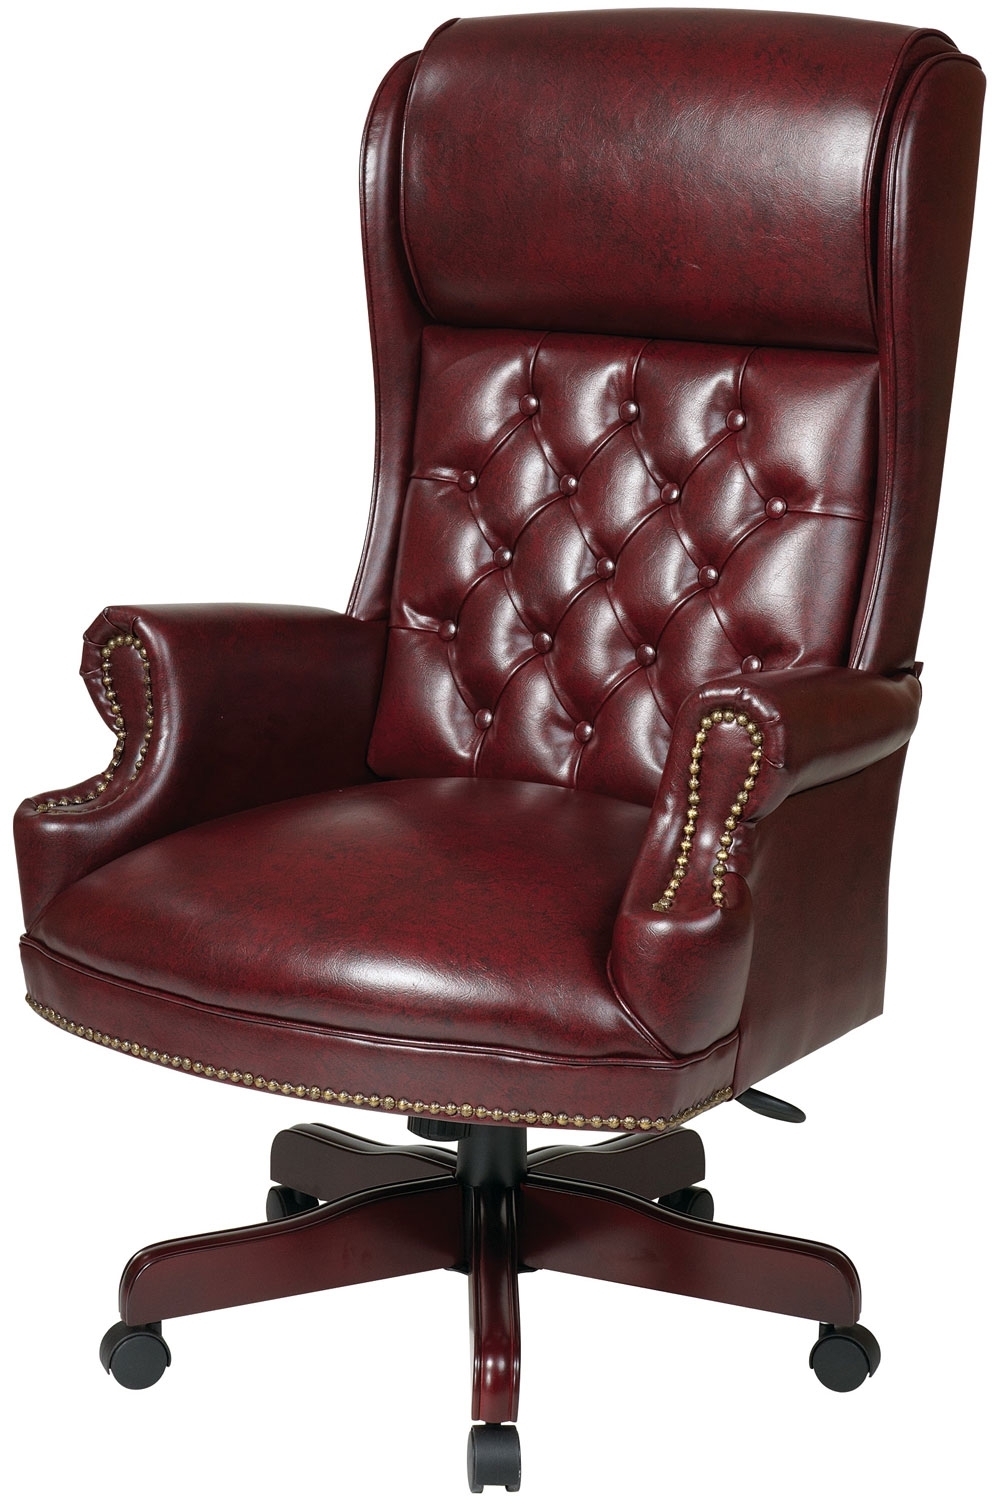 Wood And Leather Executive Office Chairs For Latest Tex228 Jt4 Office Star – Deluxe High Back Traditional Executive (View 3 of 20)